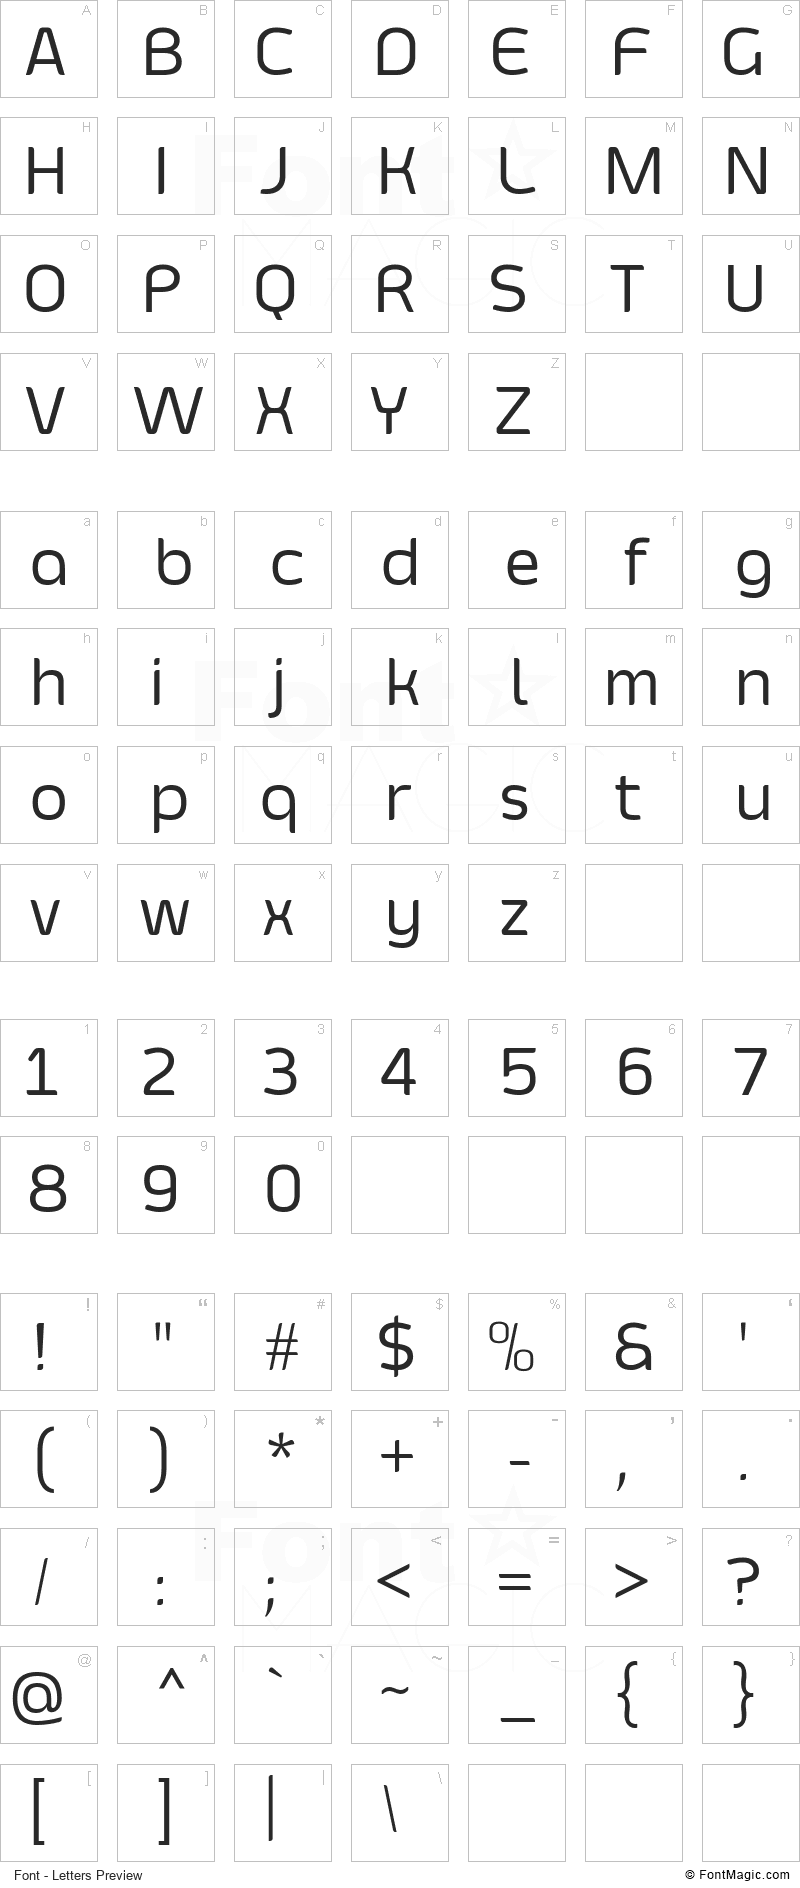 Smoolthan Font - All Latters Preview Chart